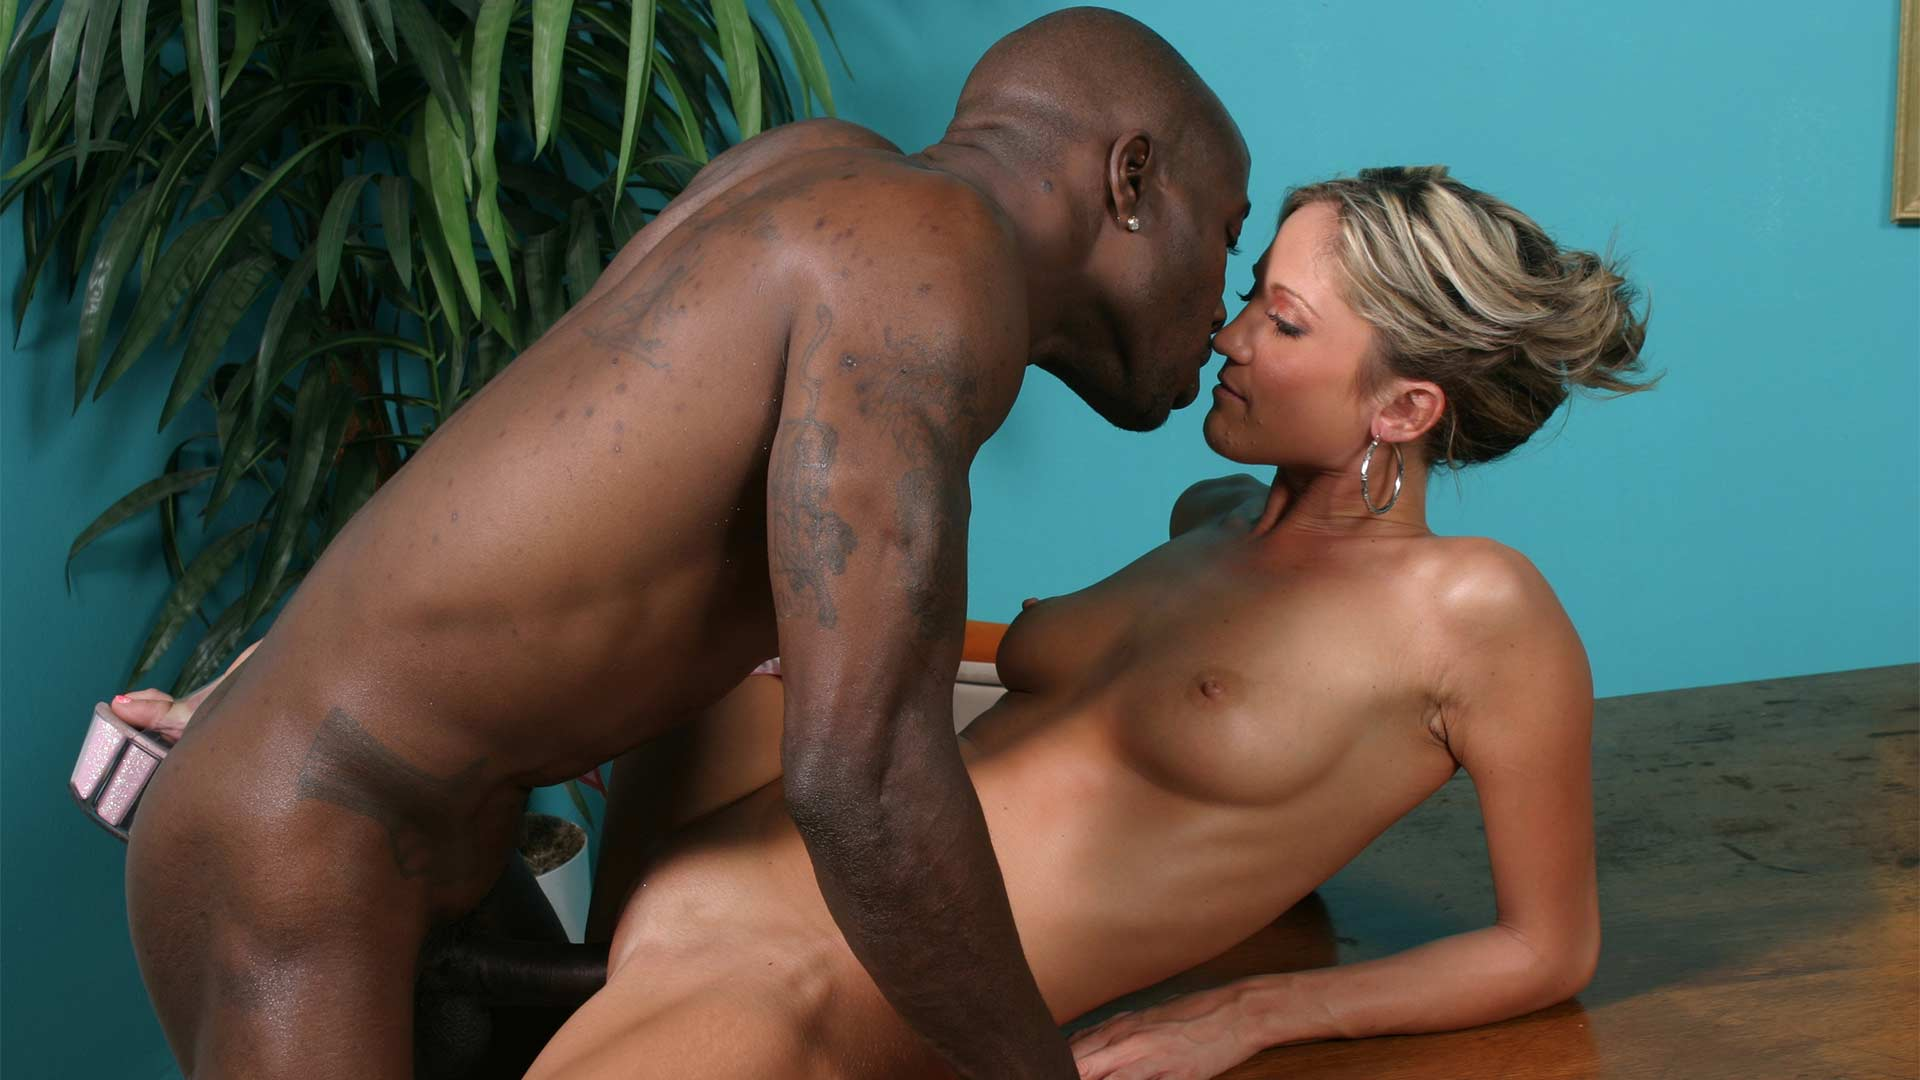 SpringThomas  I Wanna Be Spring Interracial Porn